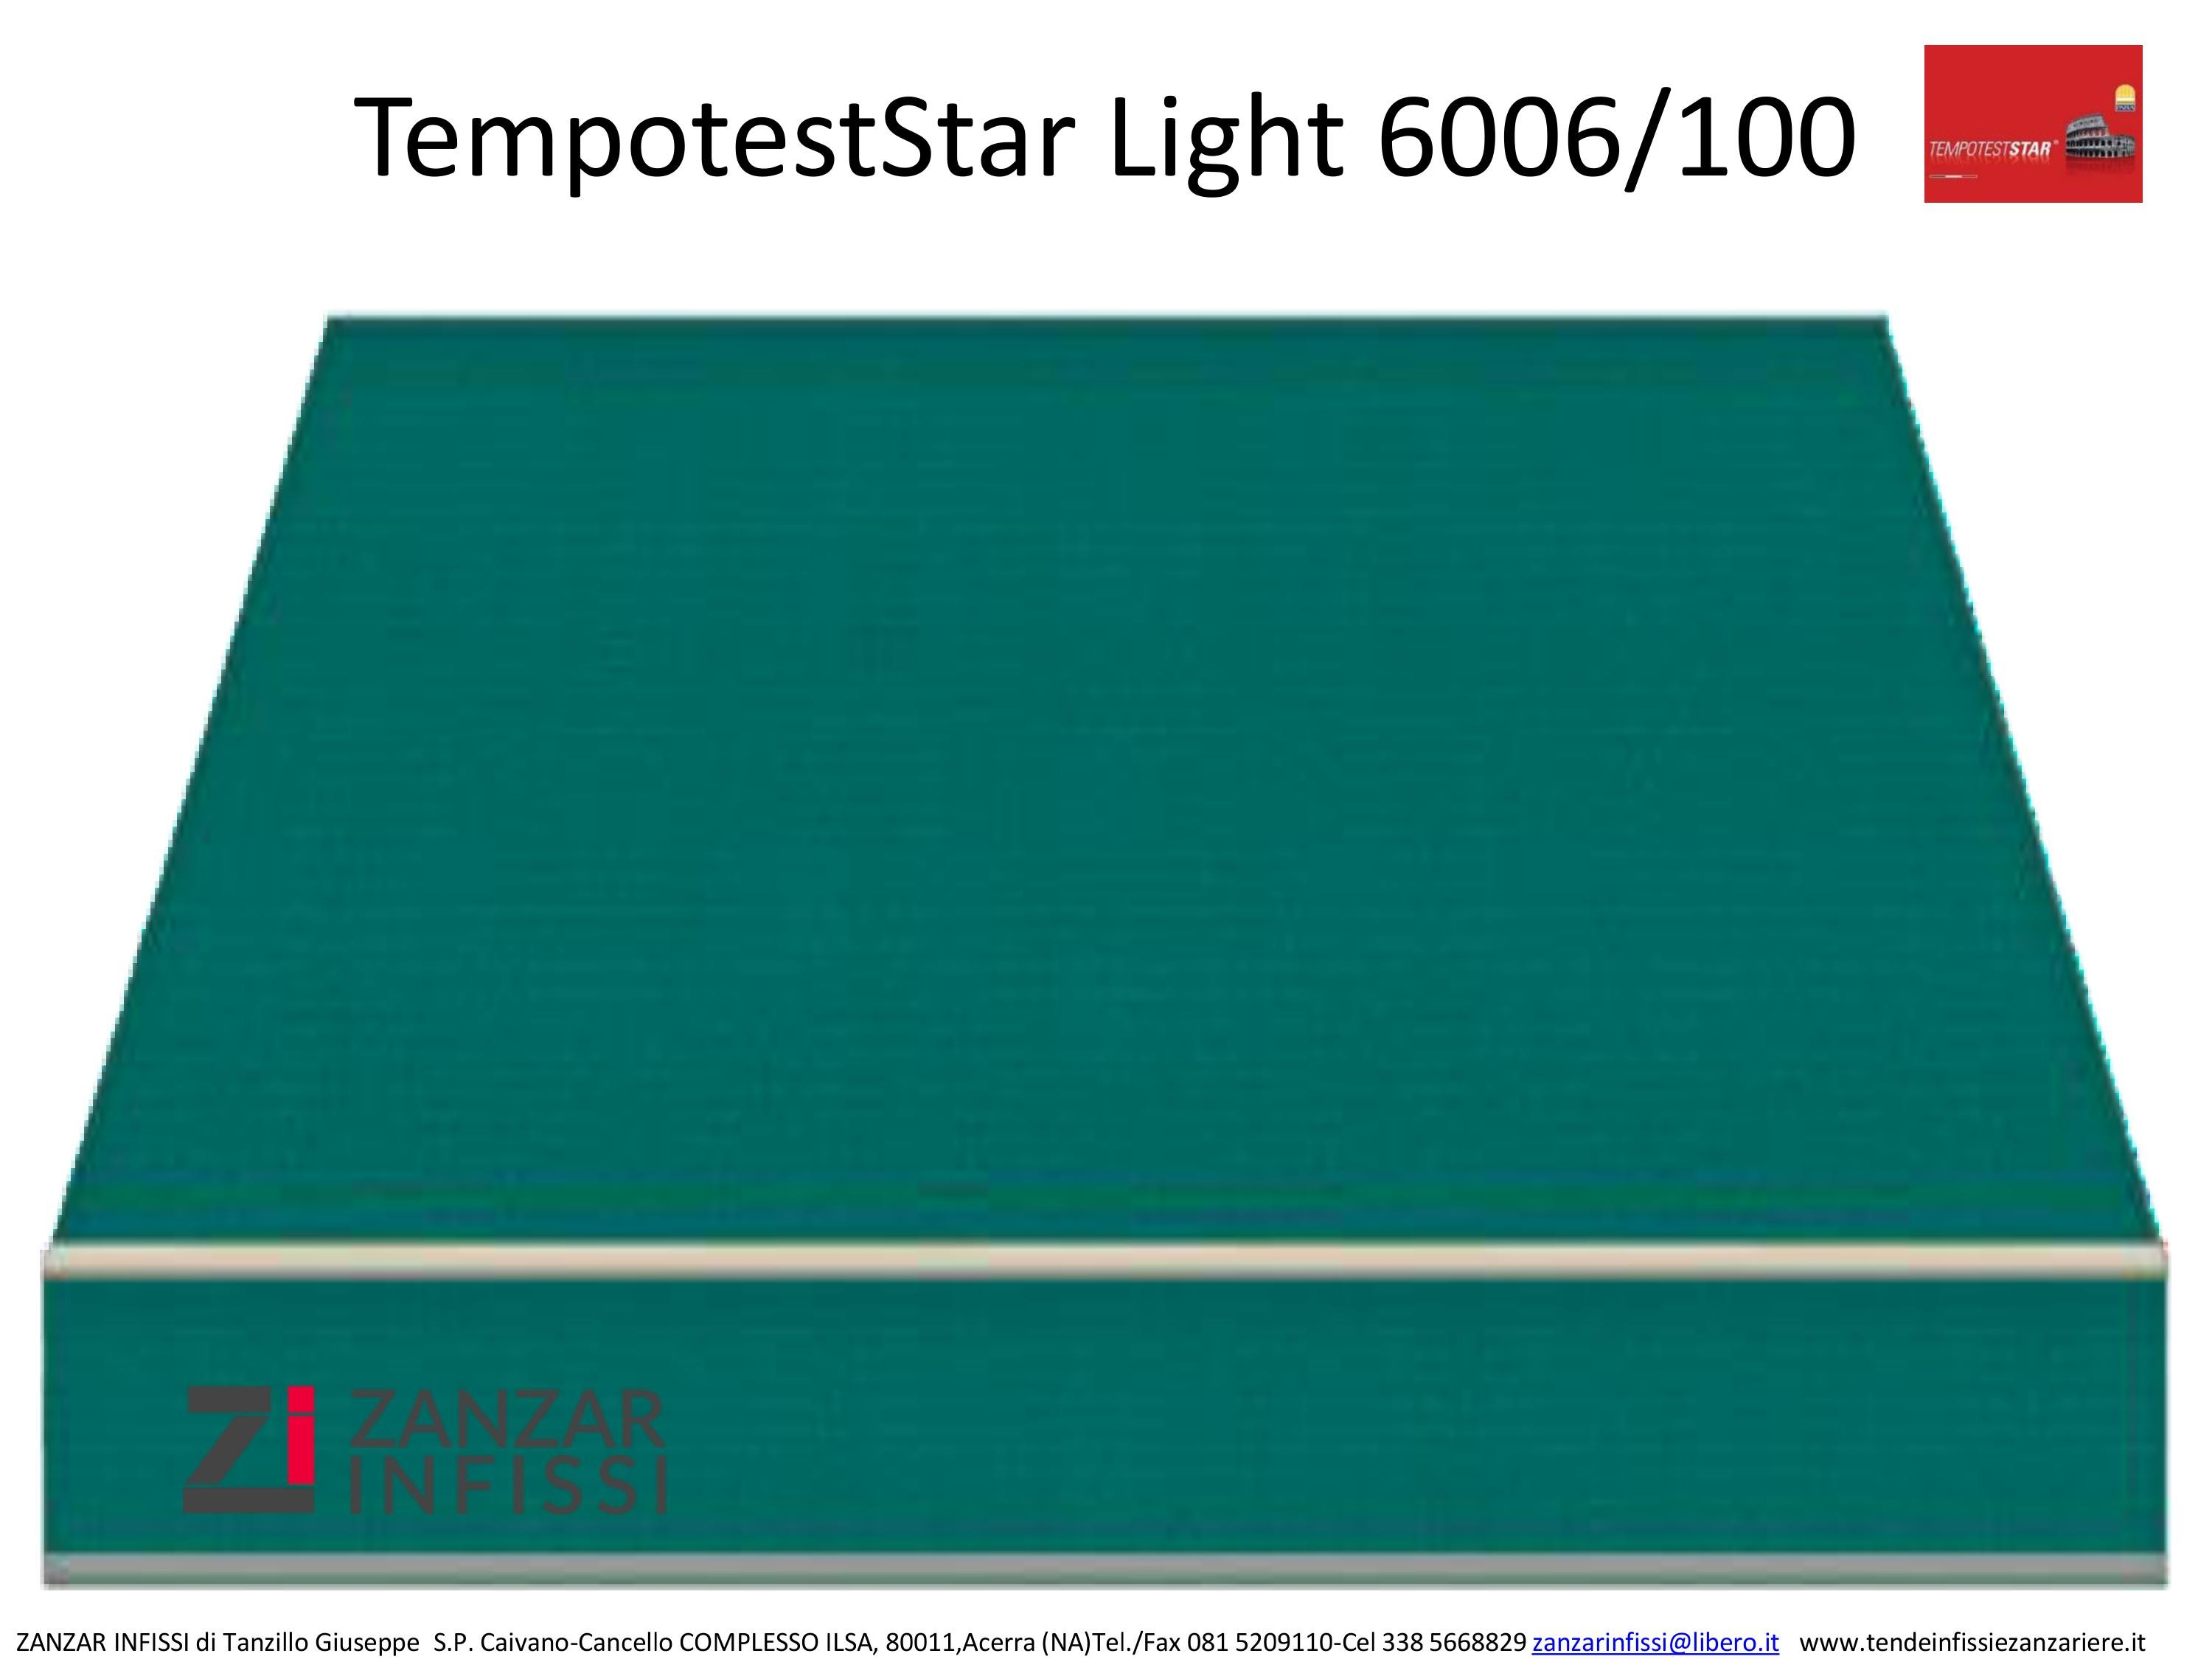 Tempotest star light 6006/100